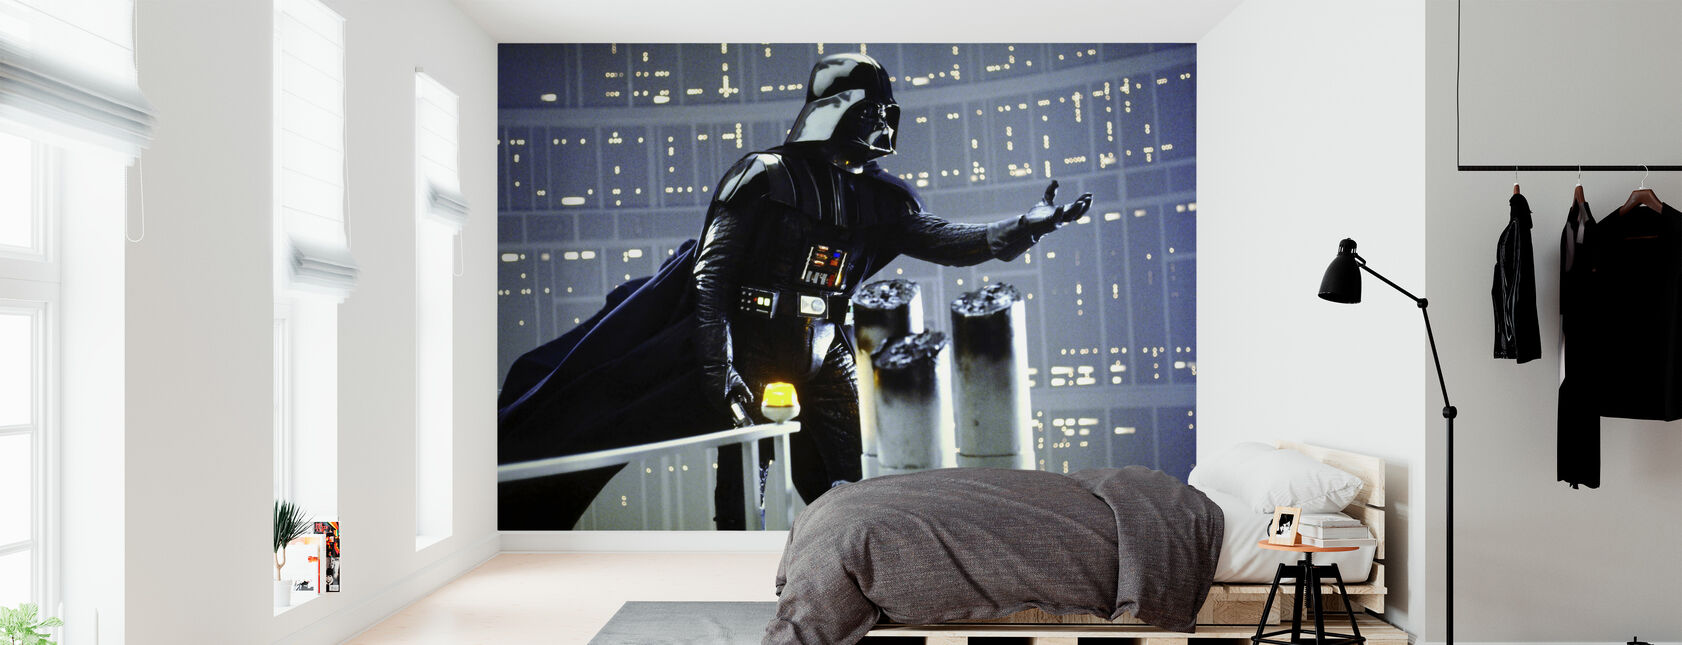 Darth Vader Darkside - David Prowse - Papel pintado - Dormitorio